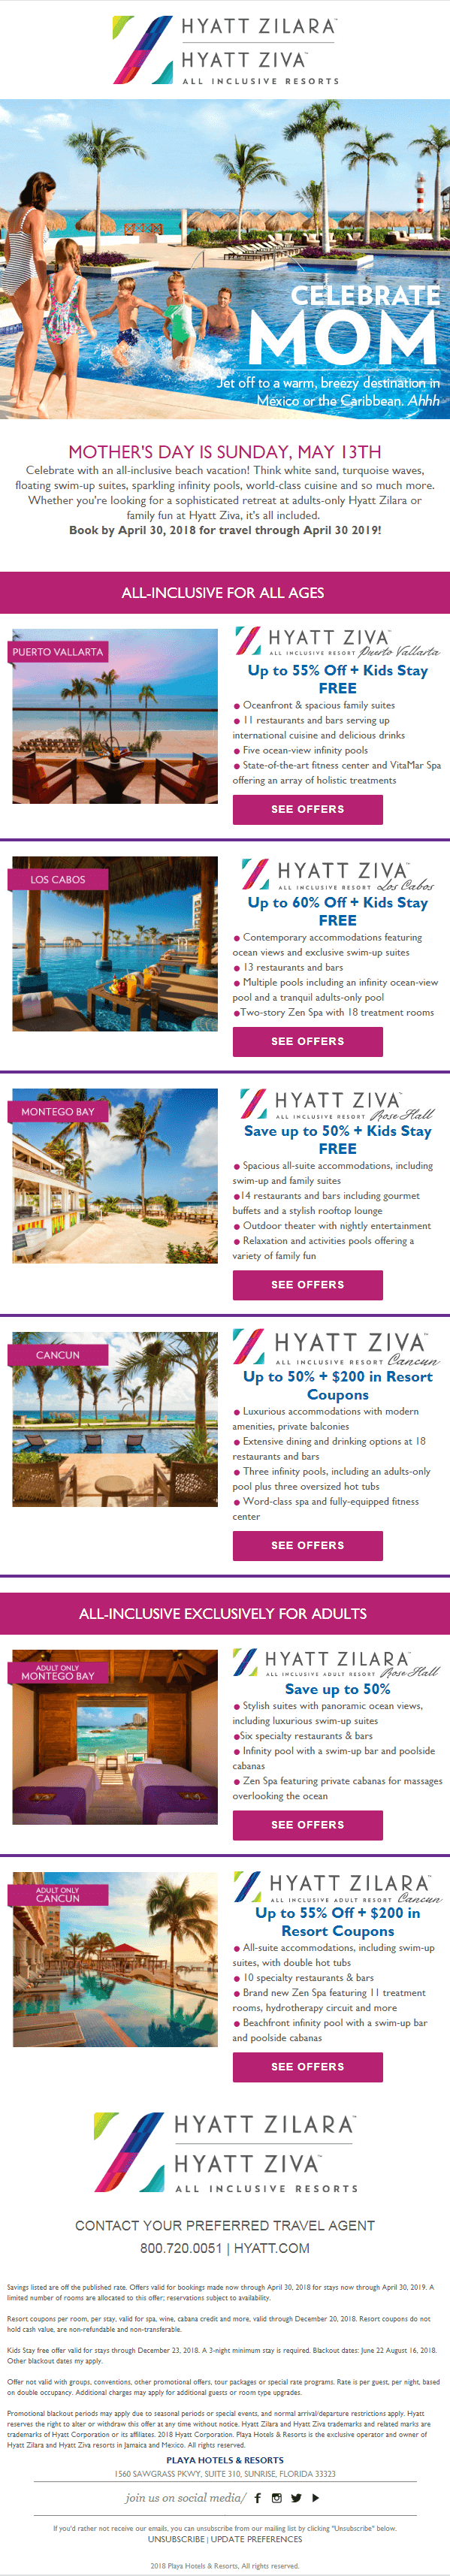 Playa Hotels & Resorts - Mother's Day Email template